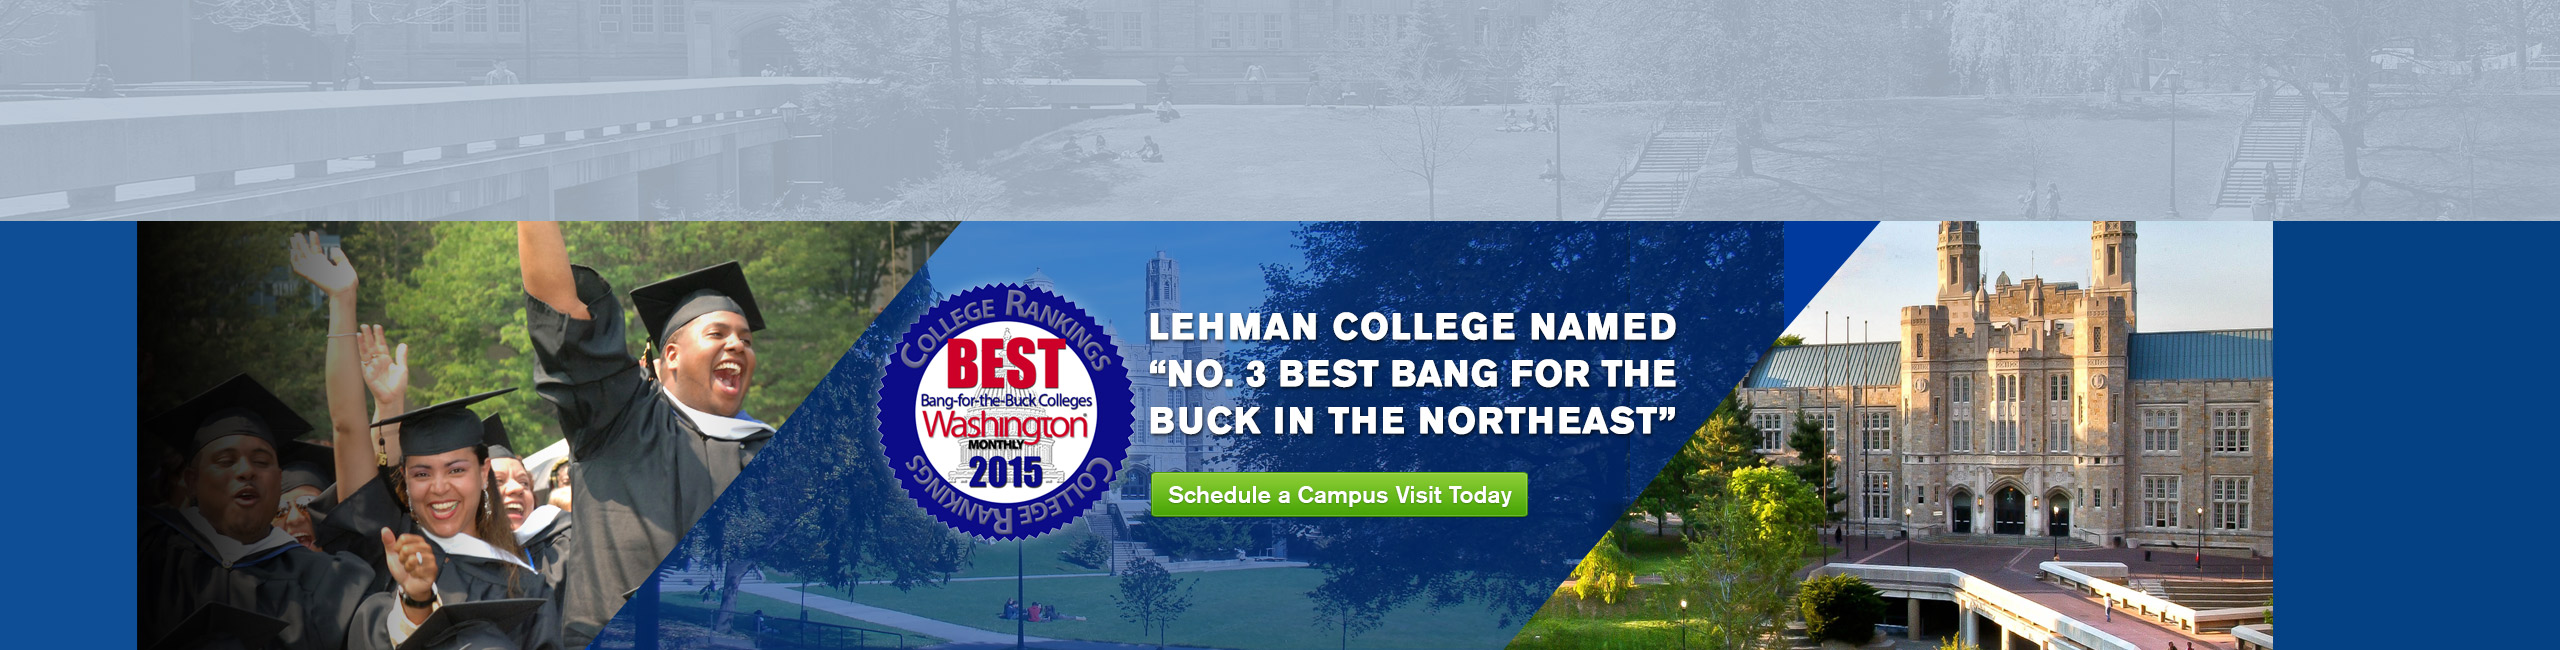 lehman college blackboard To access blackboard through the cuny portal, you must first create a portal account cuny portal new user registration lehman college help desk.